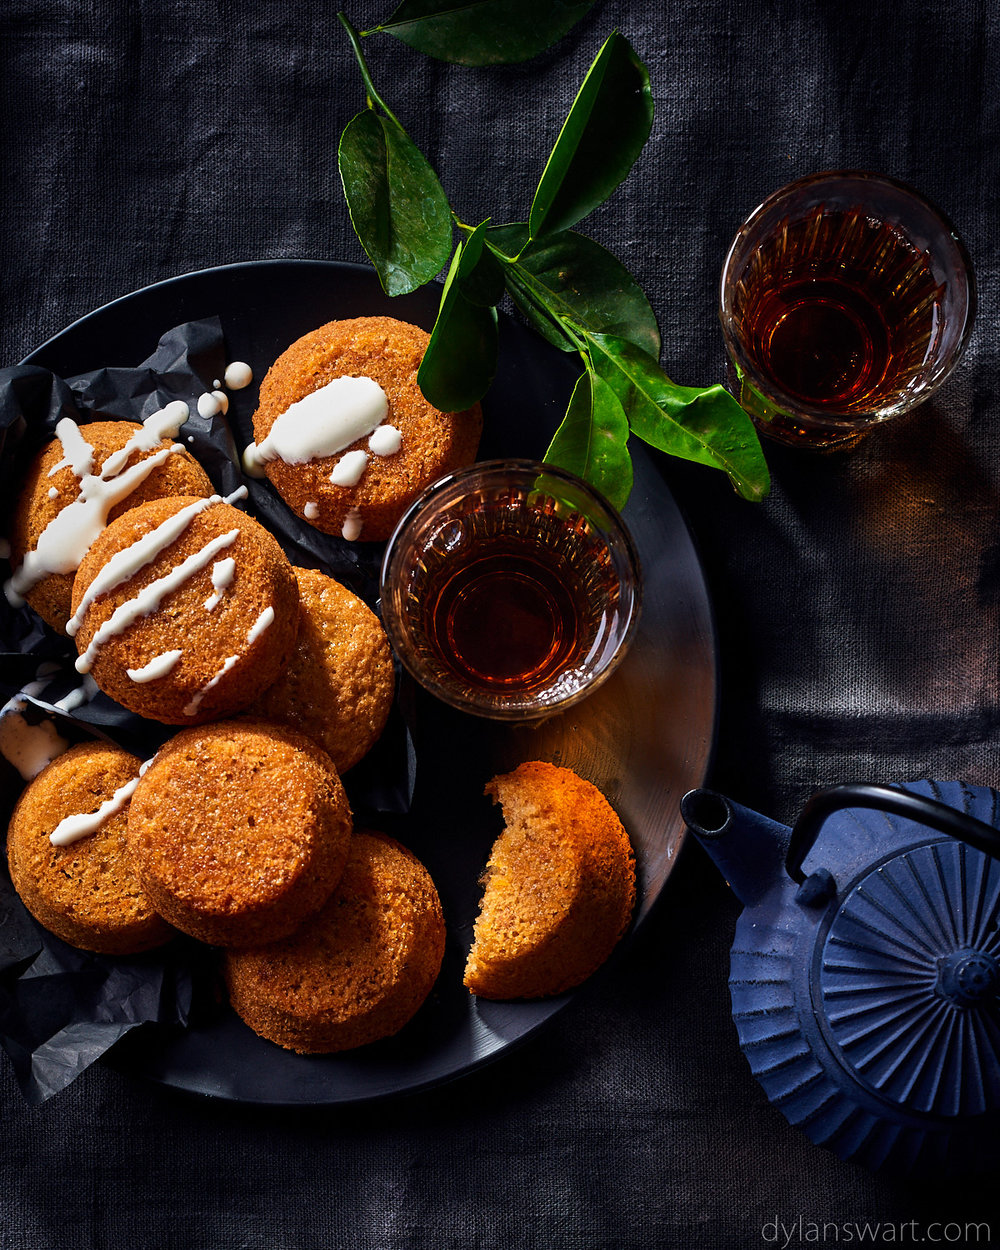 Mini carrot cakes with buttermilk drizzle